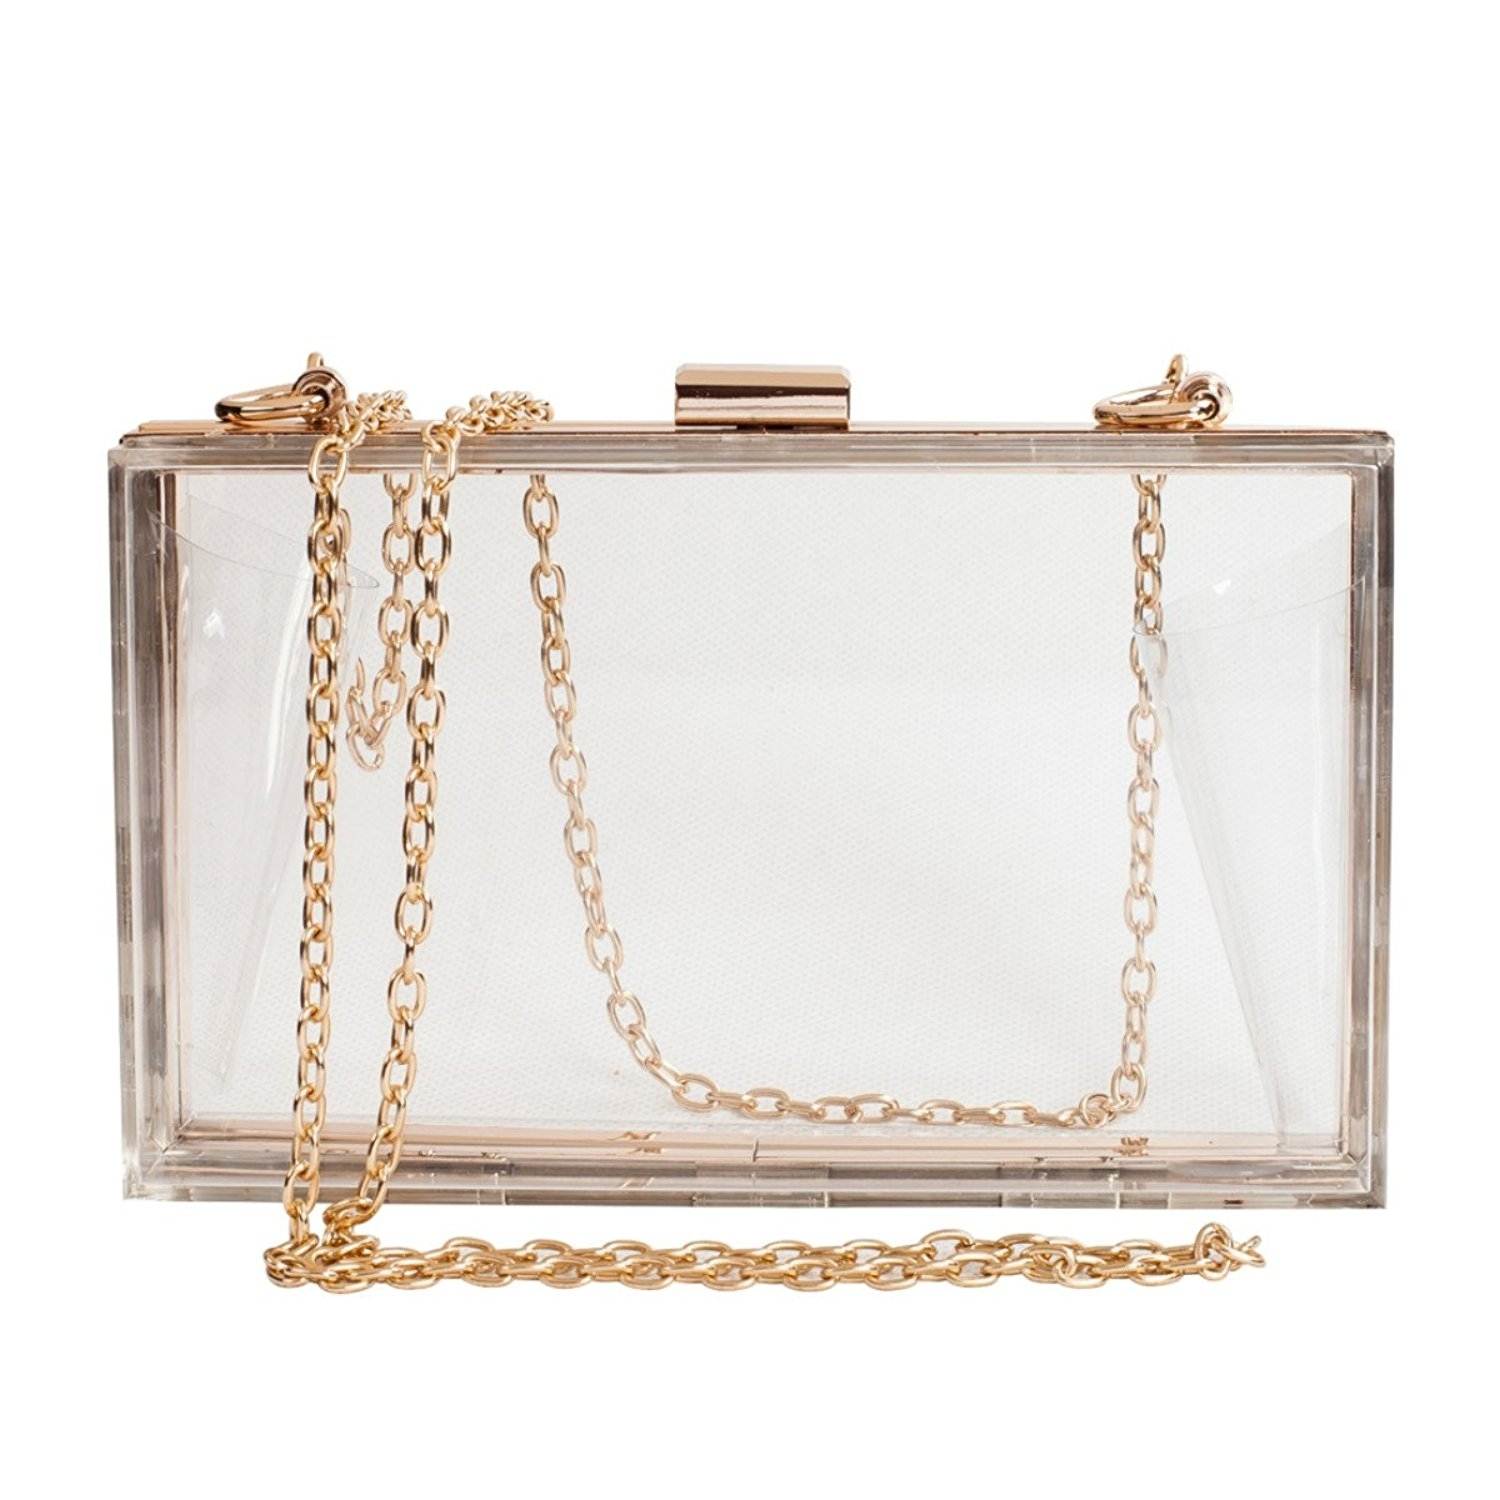 Women Cute Clear Acrylic Box Clutch Stadium Approved Crossbody Purse Evening Bag (imomoi) photo